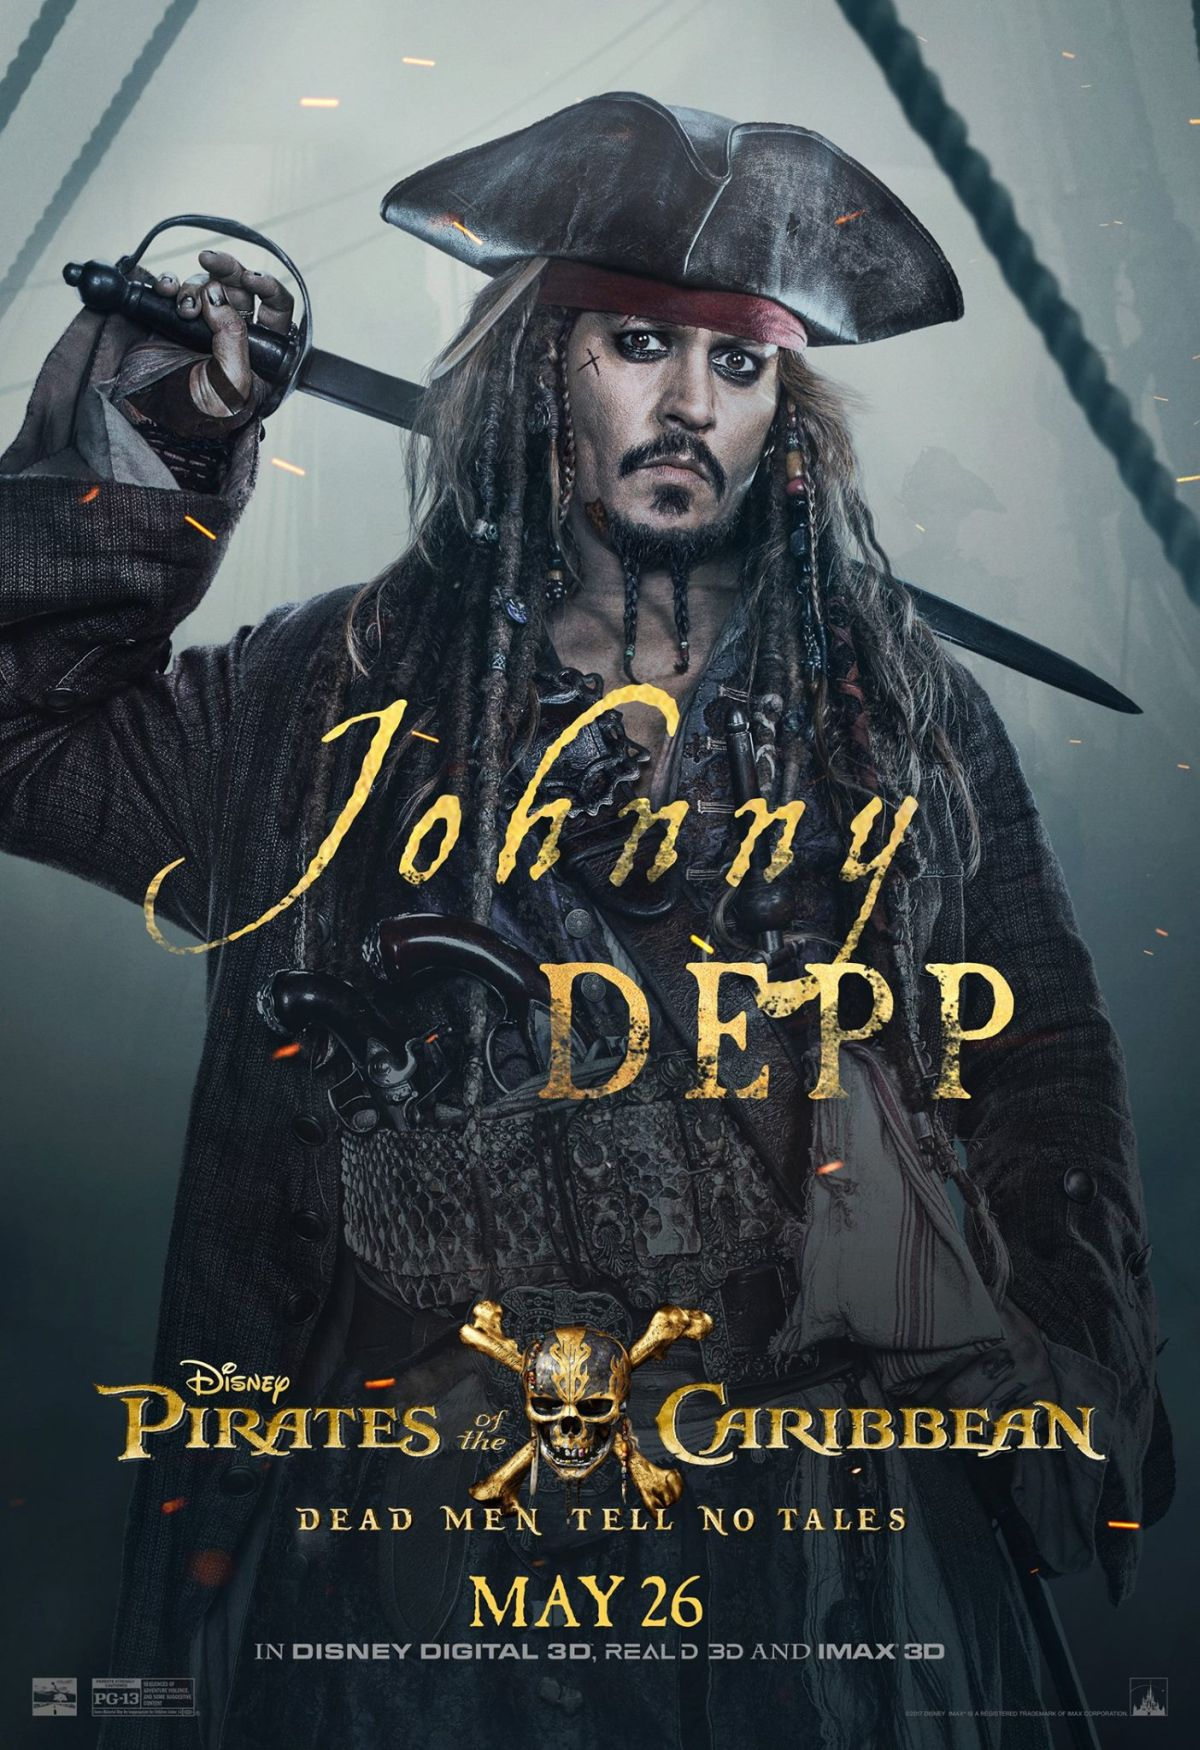 Pirates of the Caribbean: Dead Men Tell No Tales 6th Day Box Office Collection